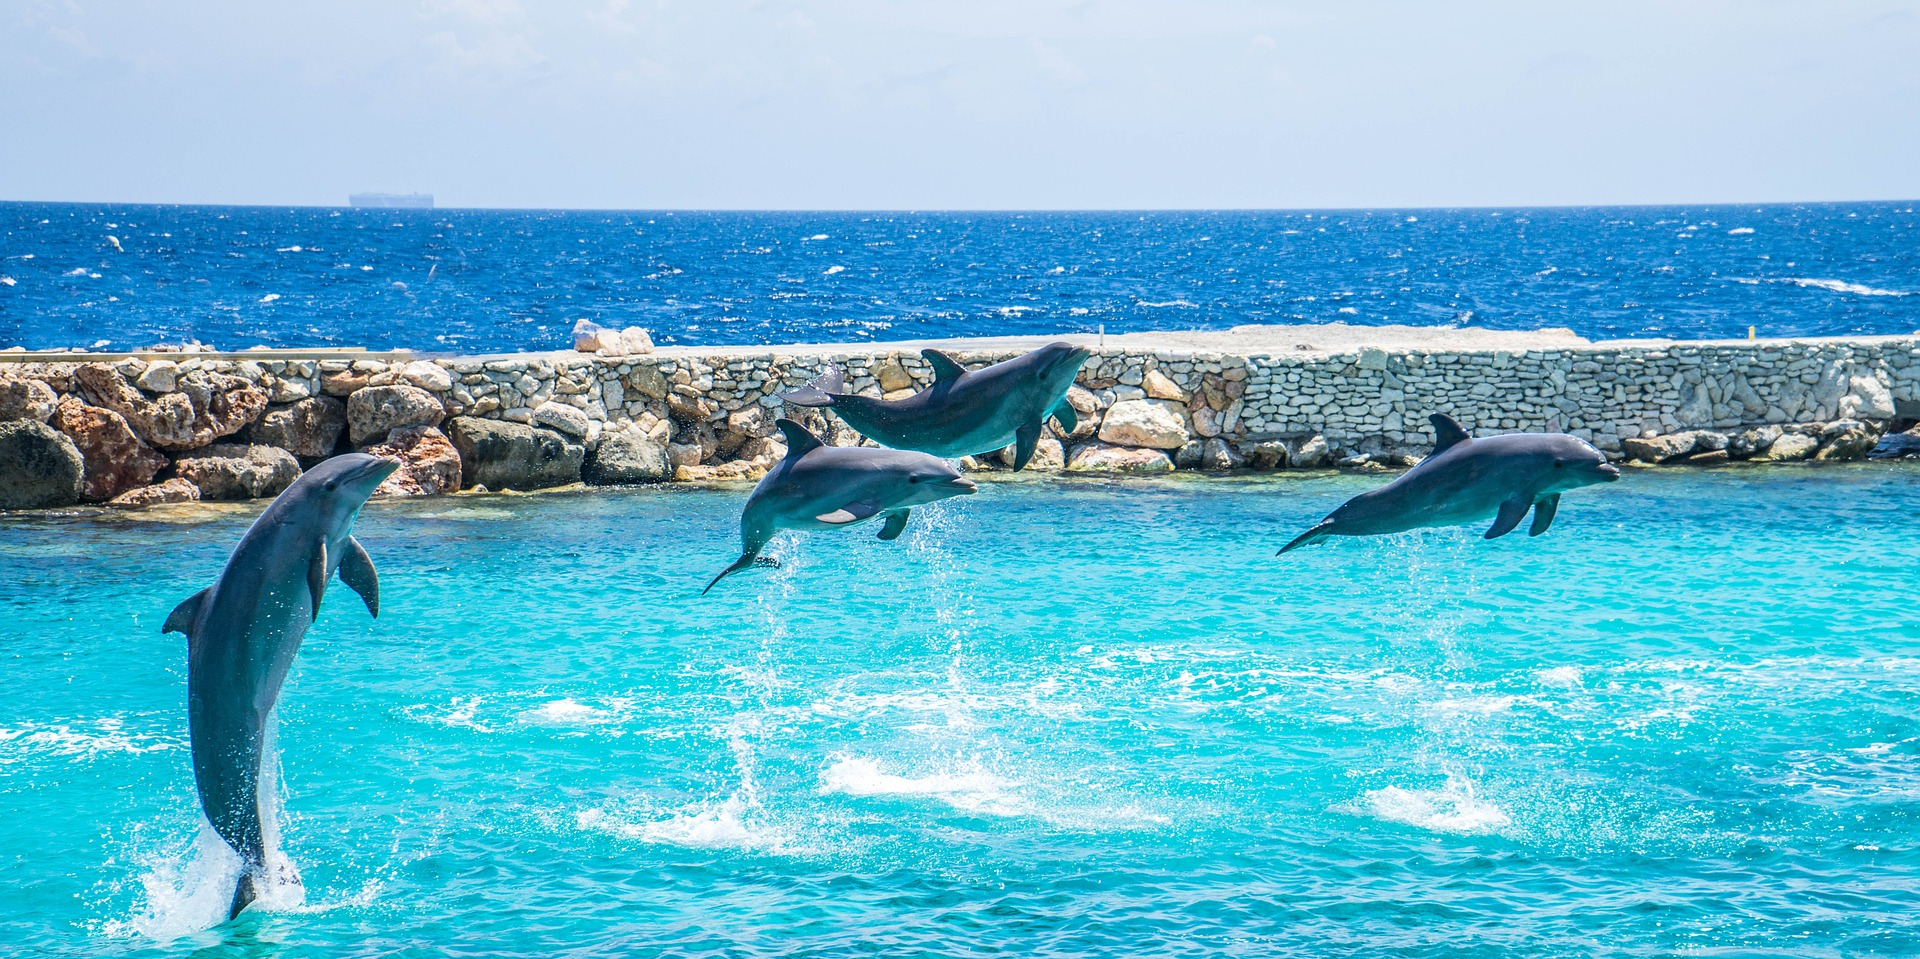 dolphins-920068_1920-1